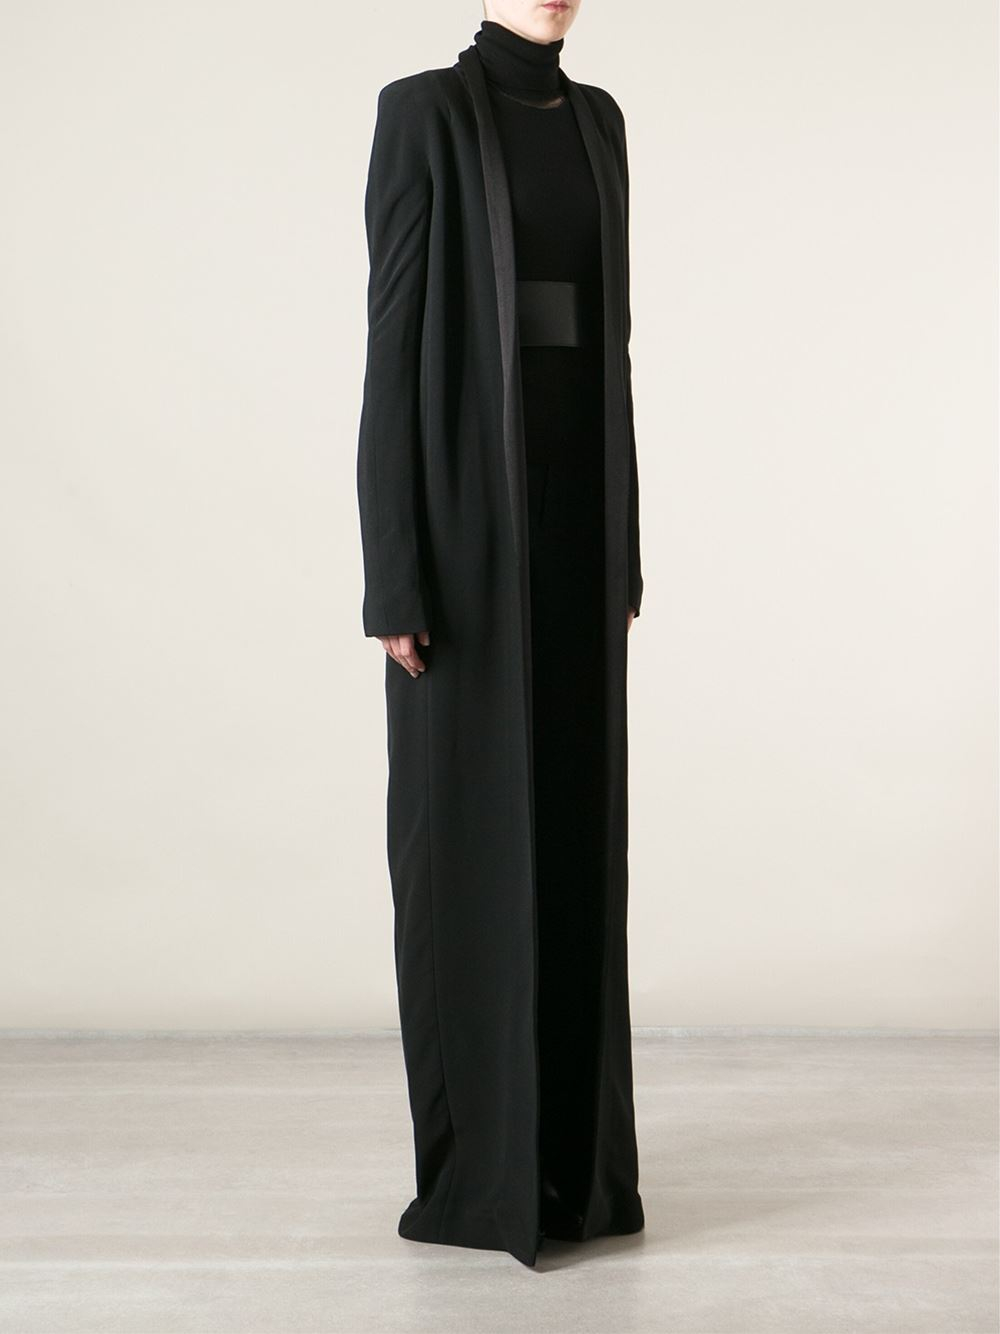 Awesome Haider Ackermann Crepe Tailored Floor Length Coat In Black | Lyst